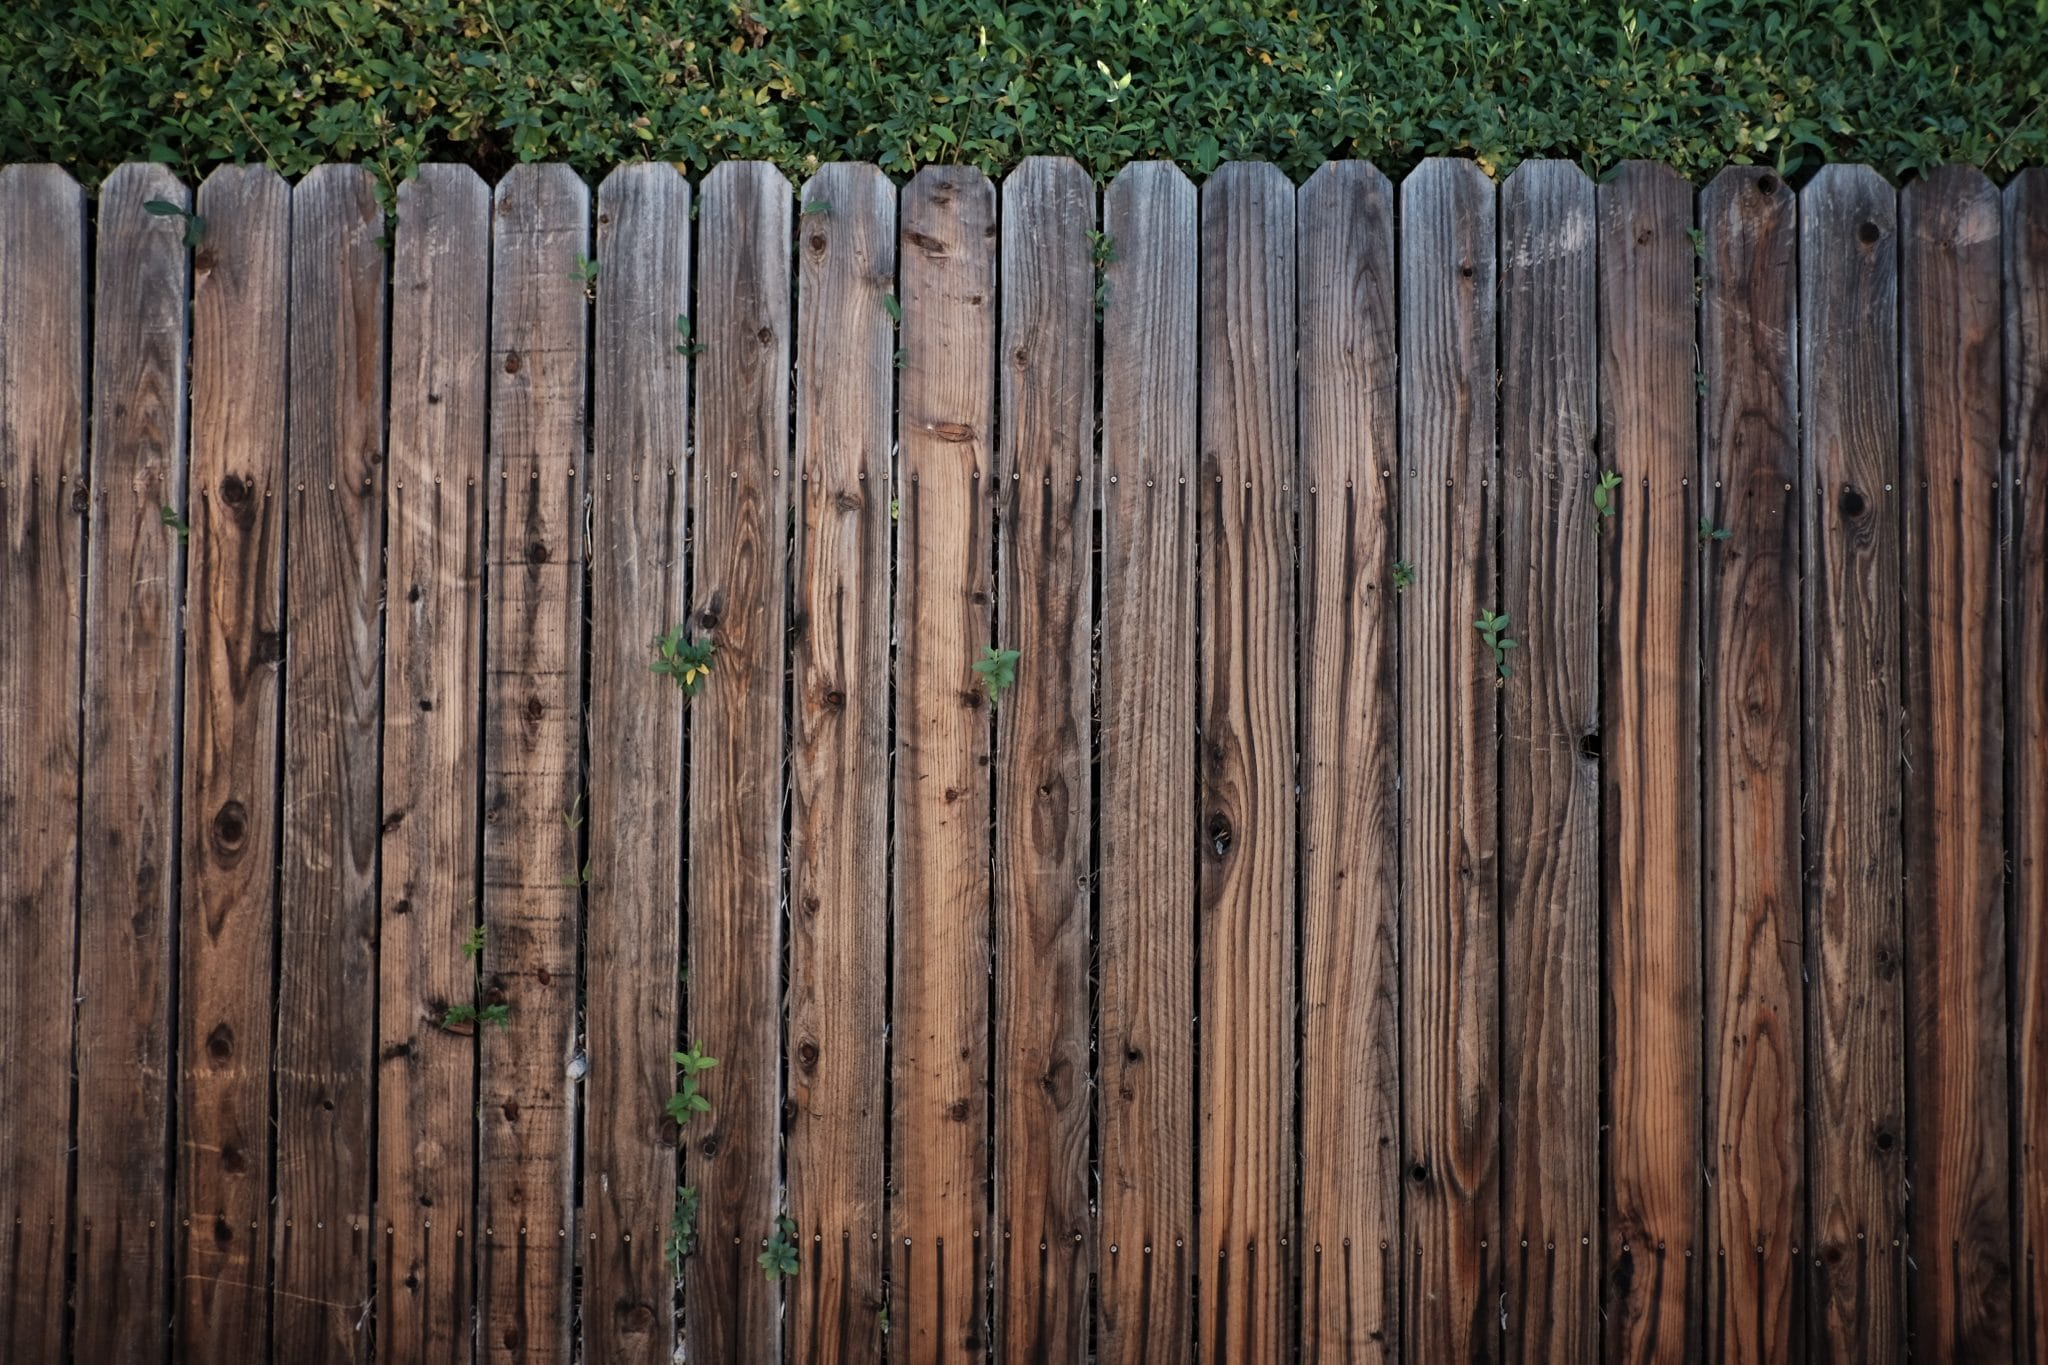 wood fence removal in west bend, wood fence repair and removal, residential and commercial fence removal